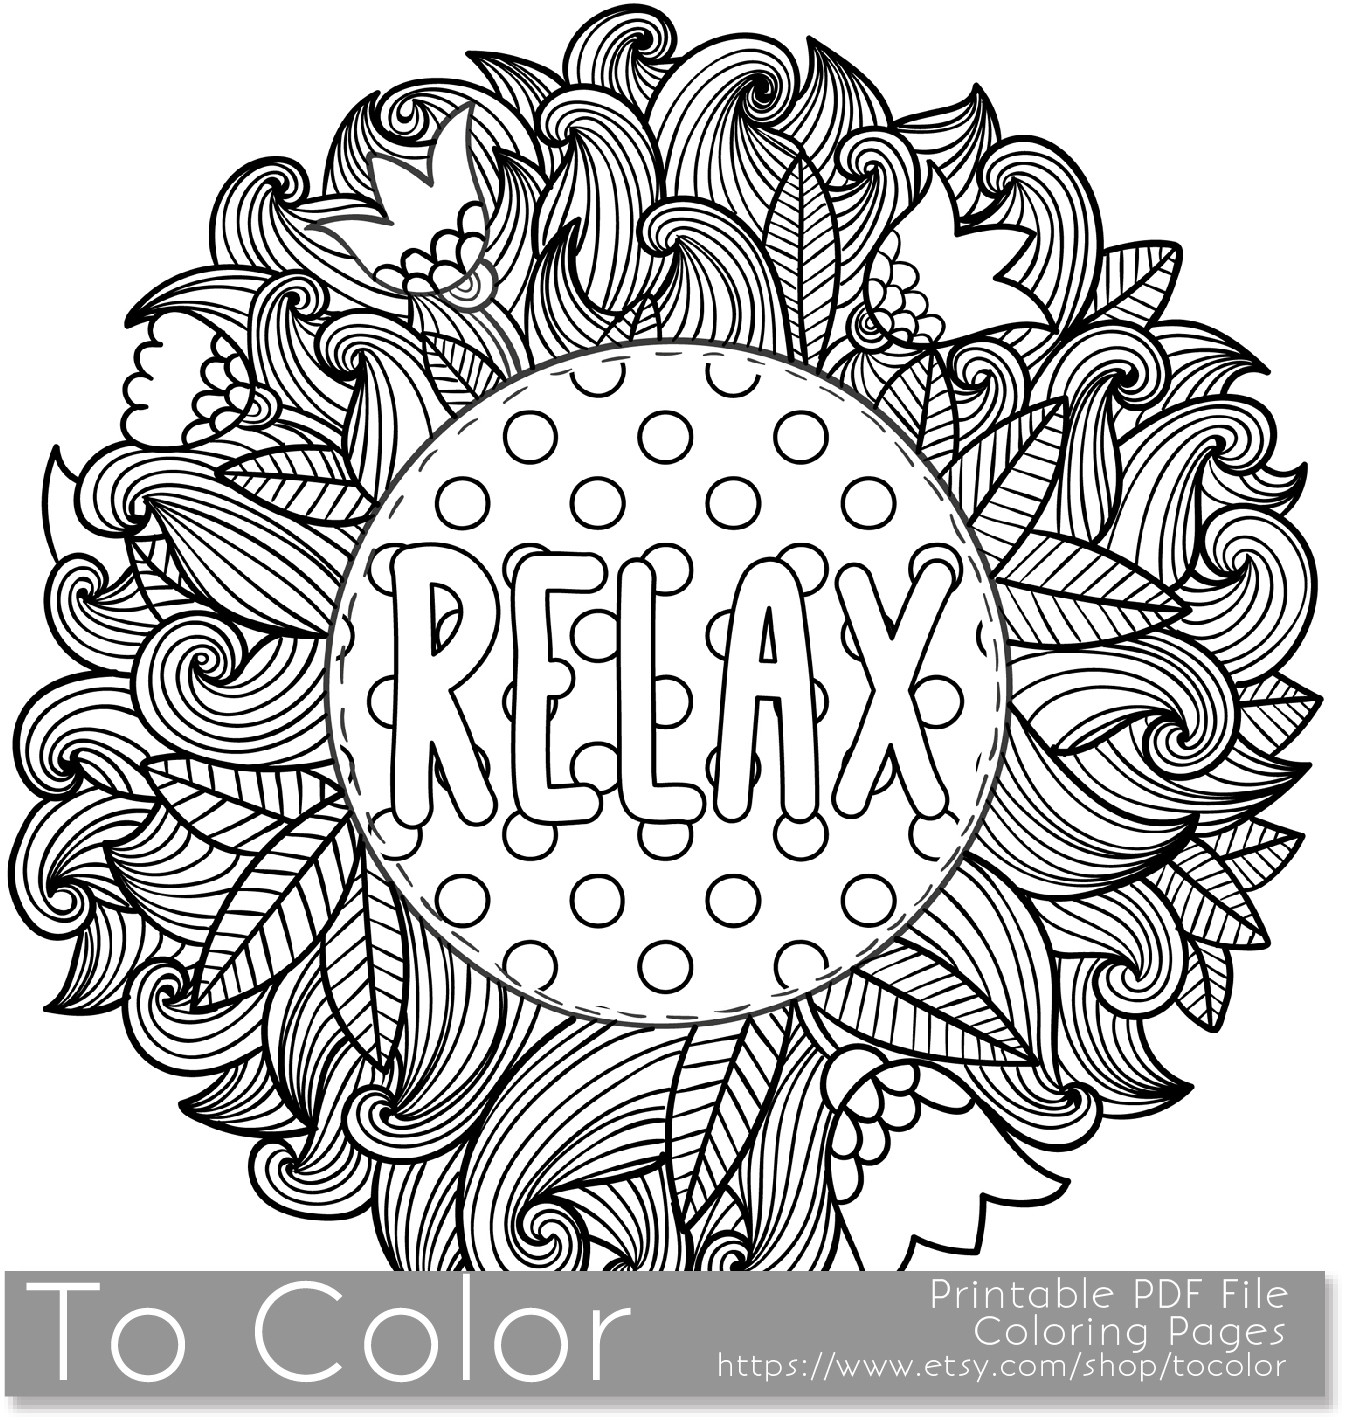 Relax coloring #20, Download drawings